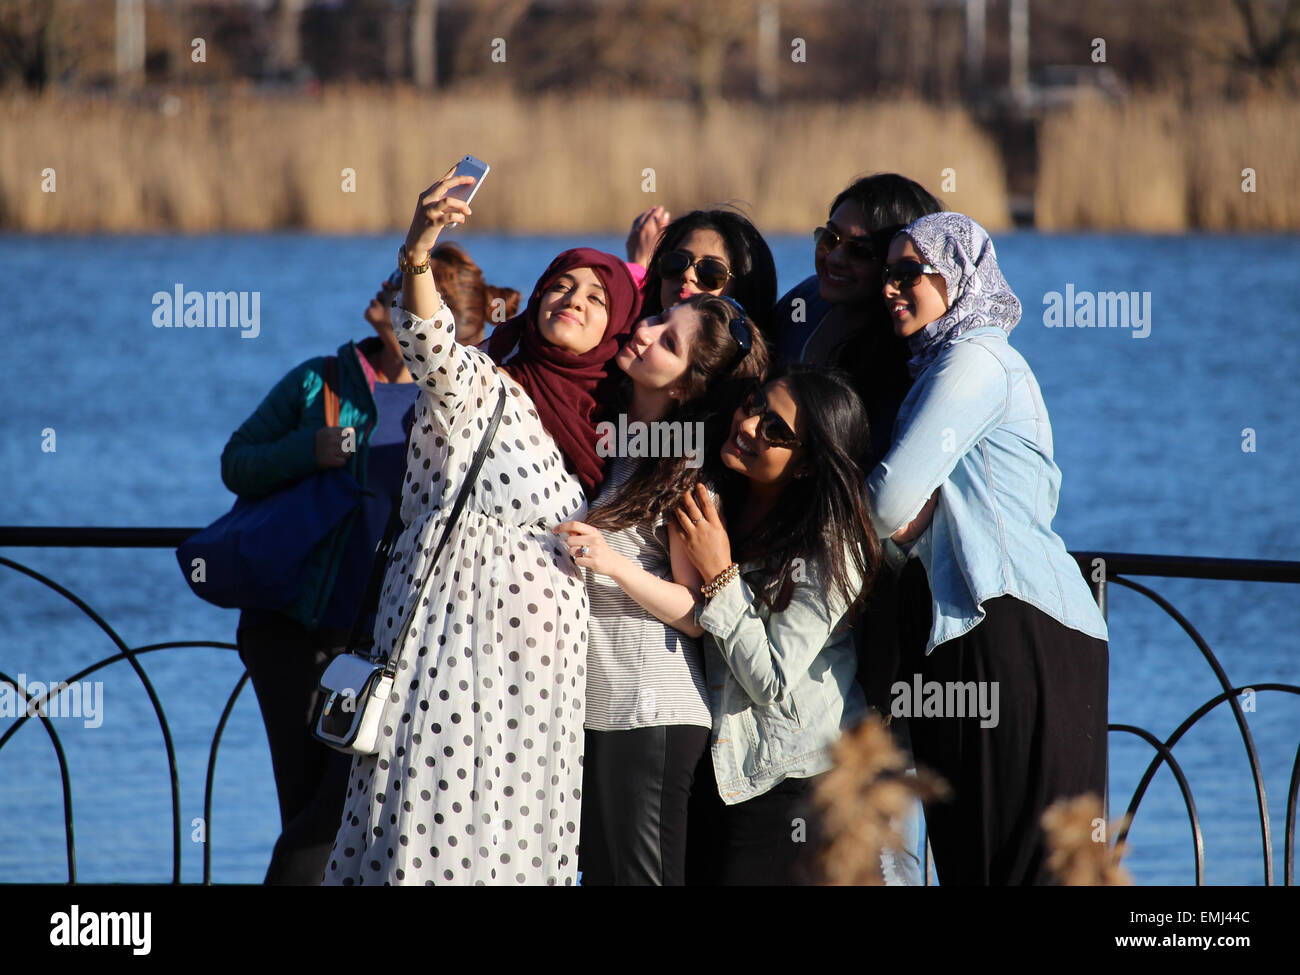 A group of female friends taking a selfie near a pond. - Stock Image